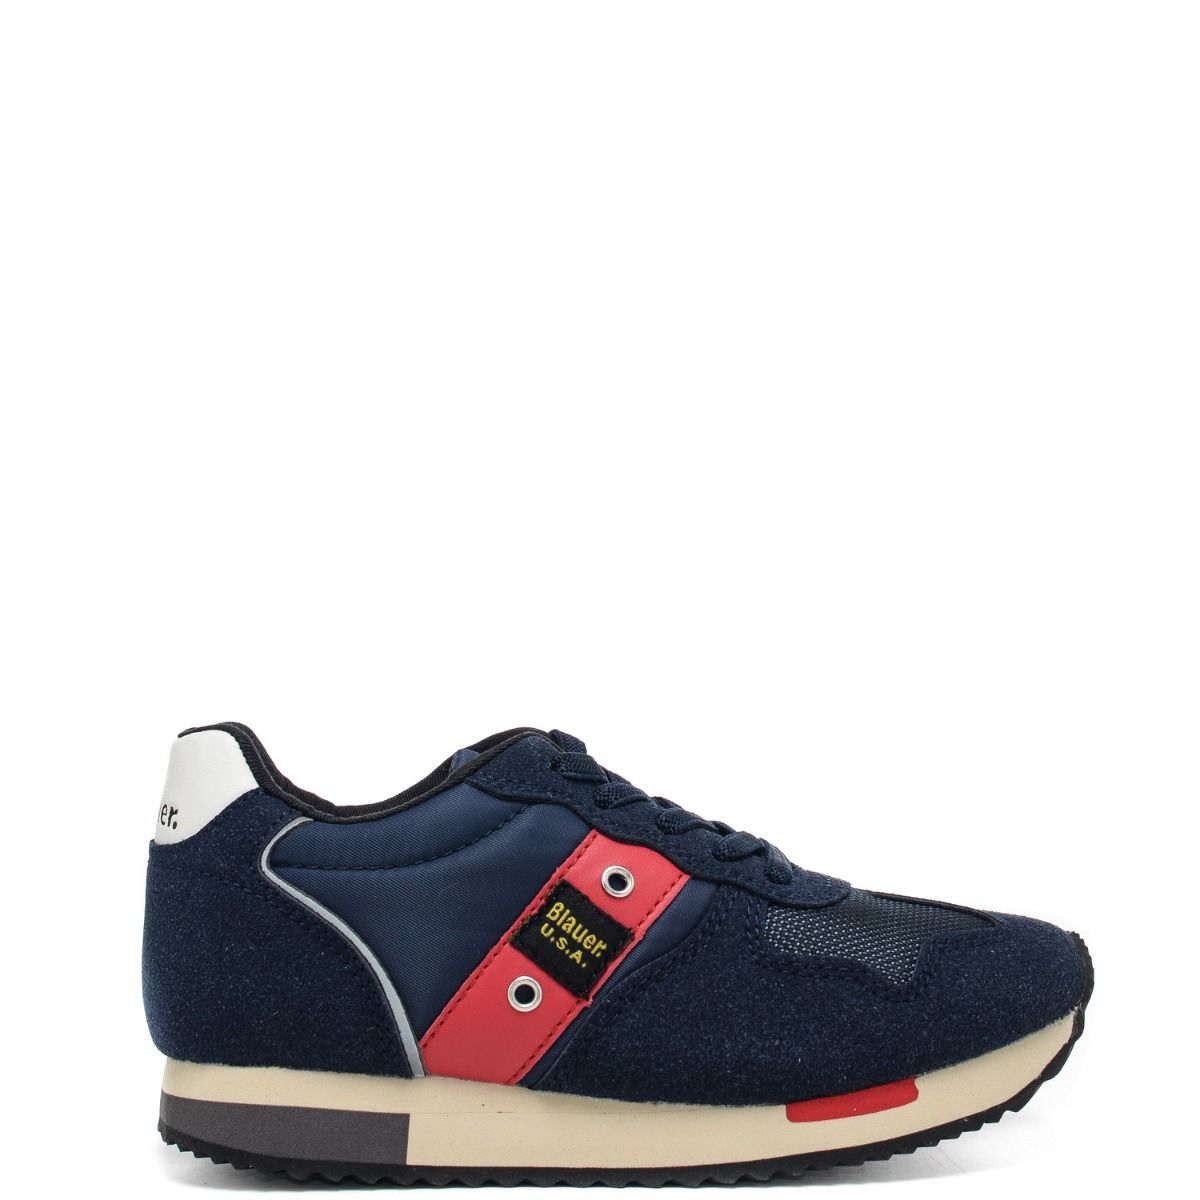 Blauer sneakers F0DASH02